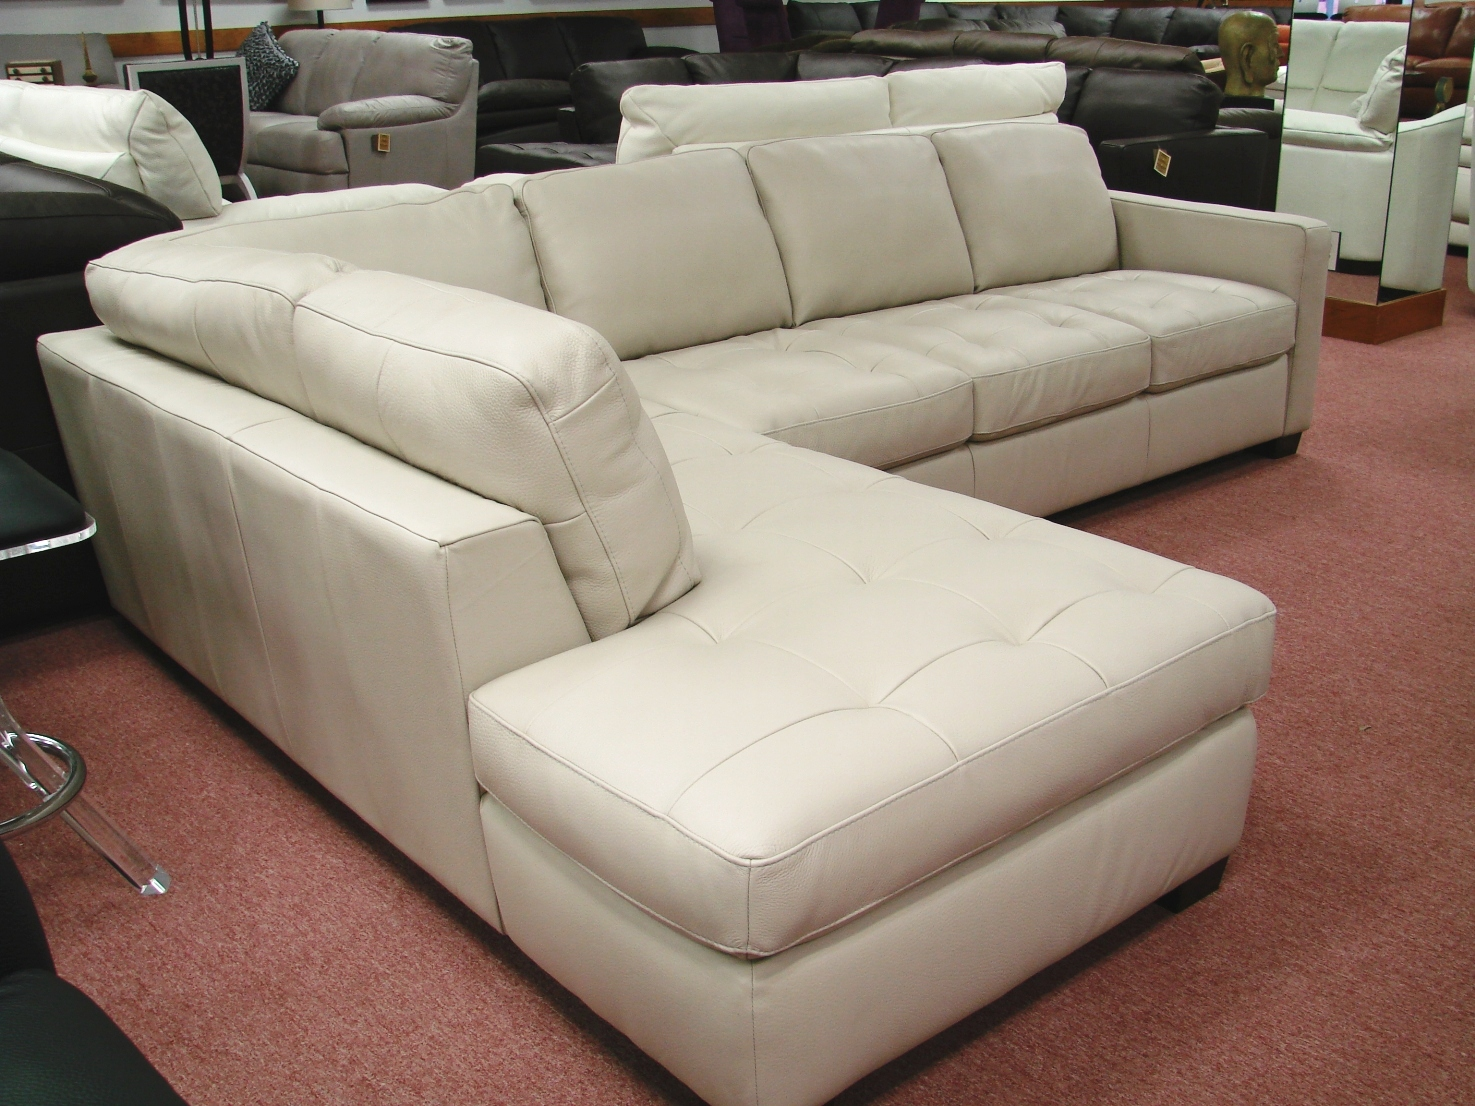 Natuzzi leather sofas sectionals by interior concepts furniture may 2012 - Sofas natuzzi ...